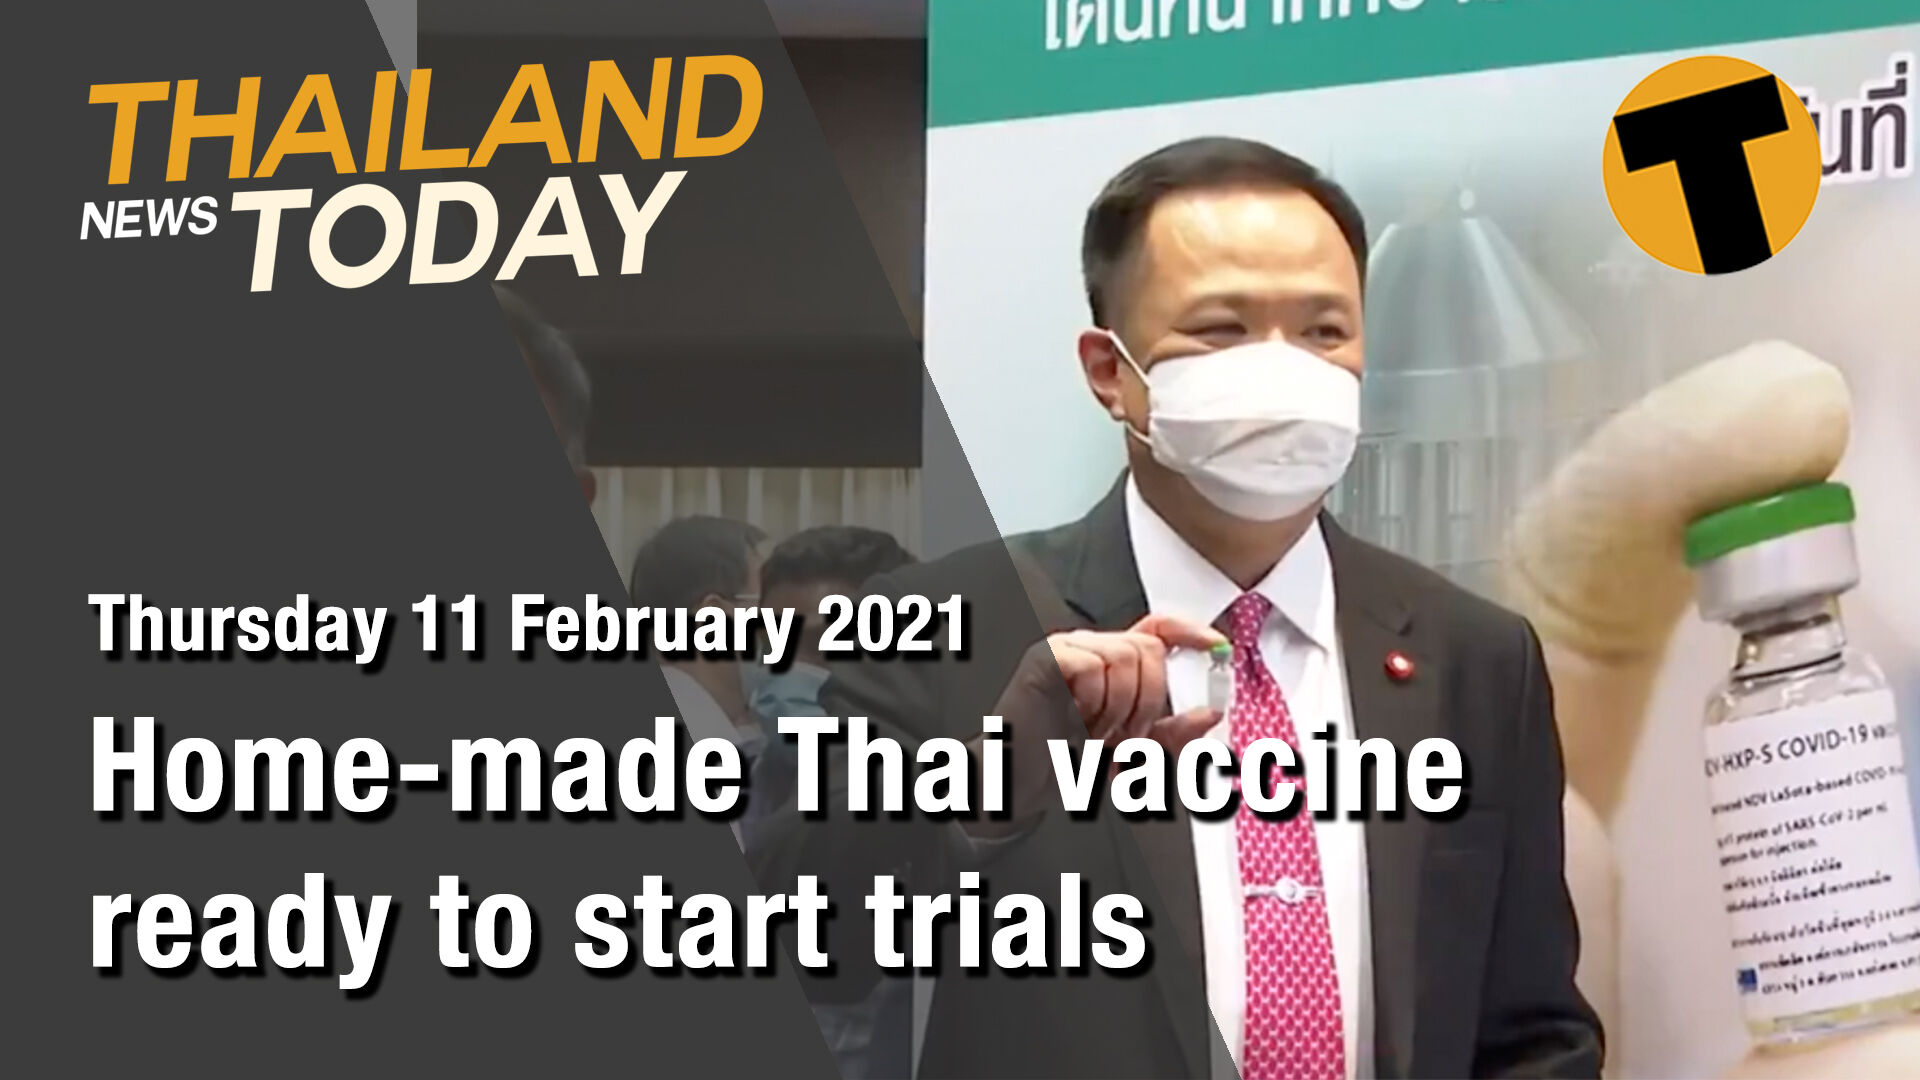 Thailand News Today | Home-made Thai vaccine ready to start trials | February 11 | The Thaiger